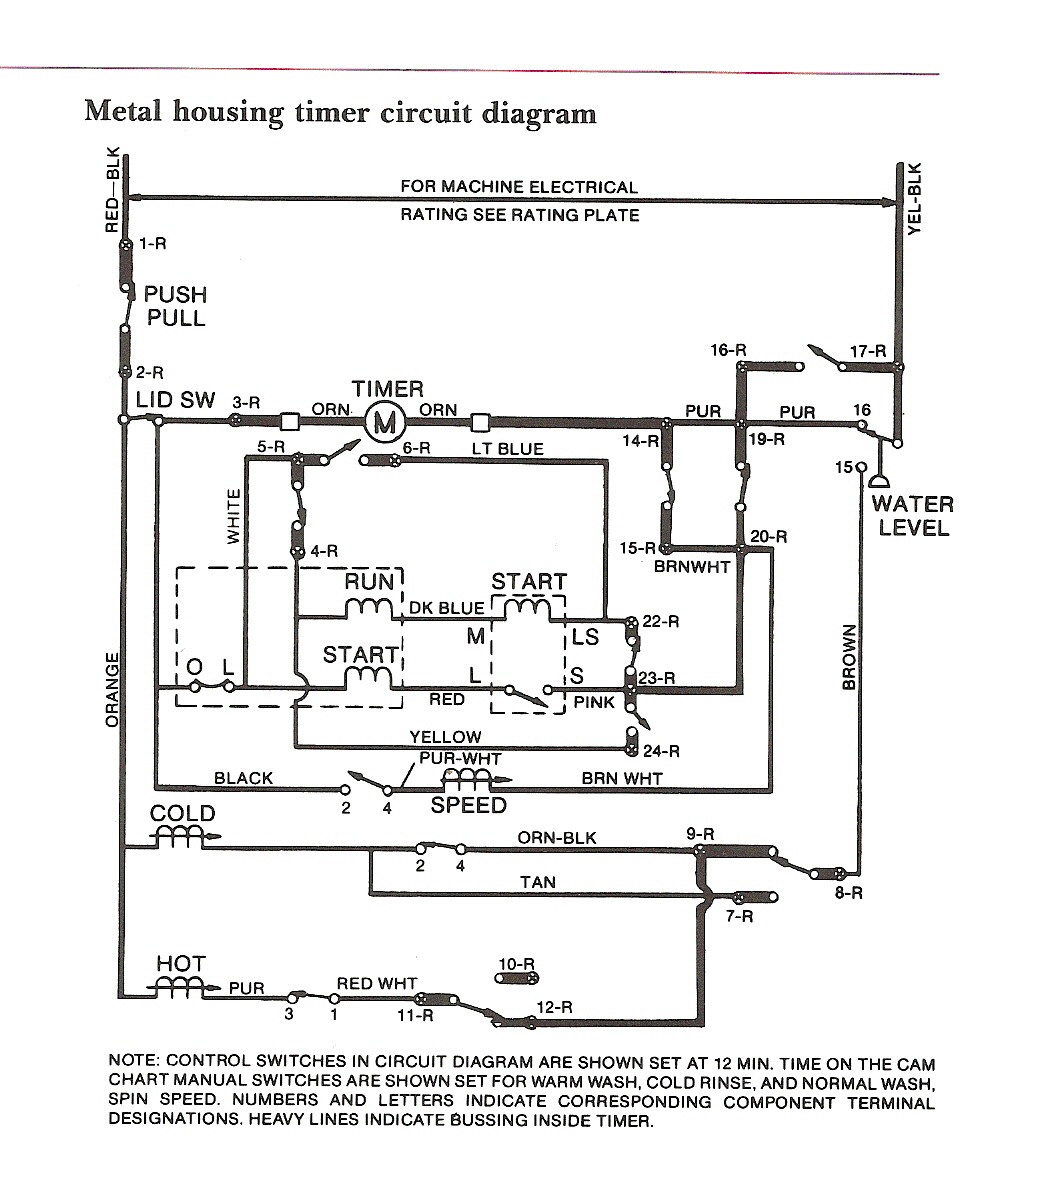 Ge Motor Control Wiring Diagrams - Wiring Diagrams Value on